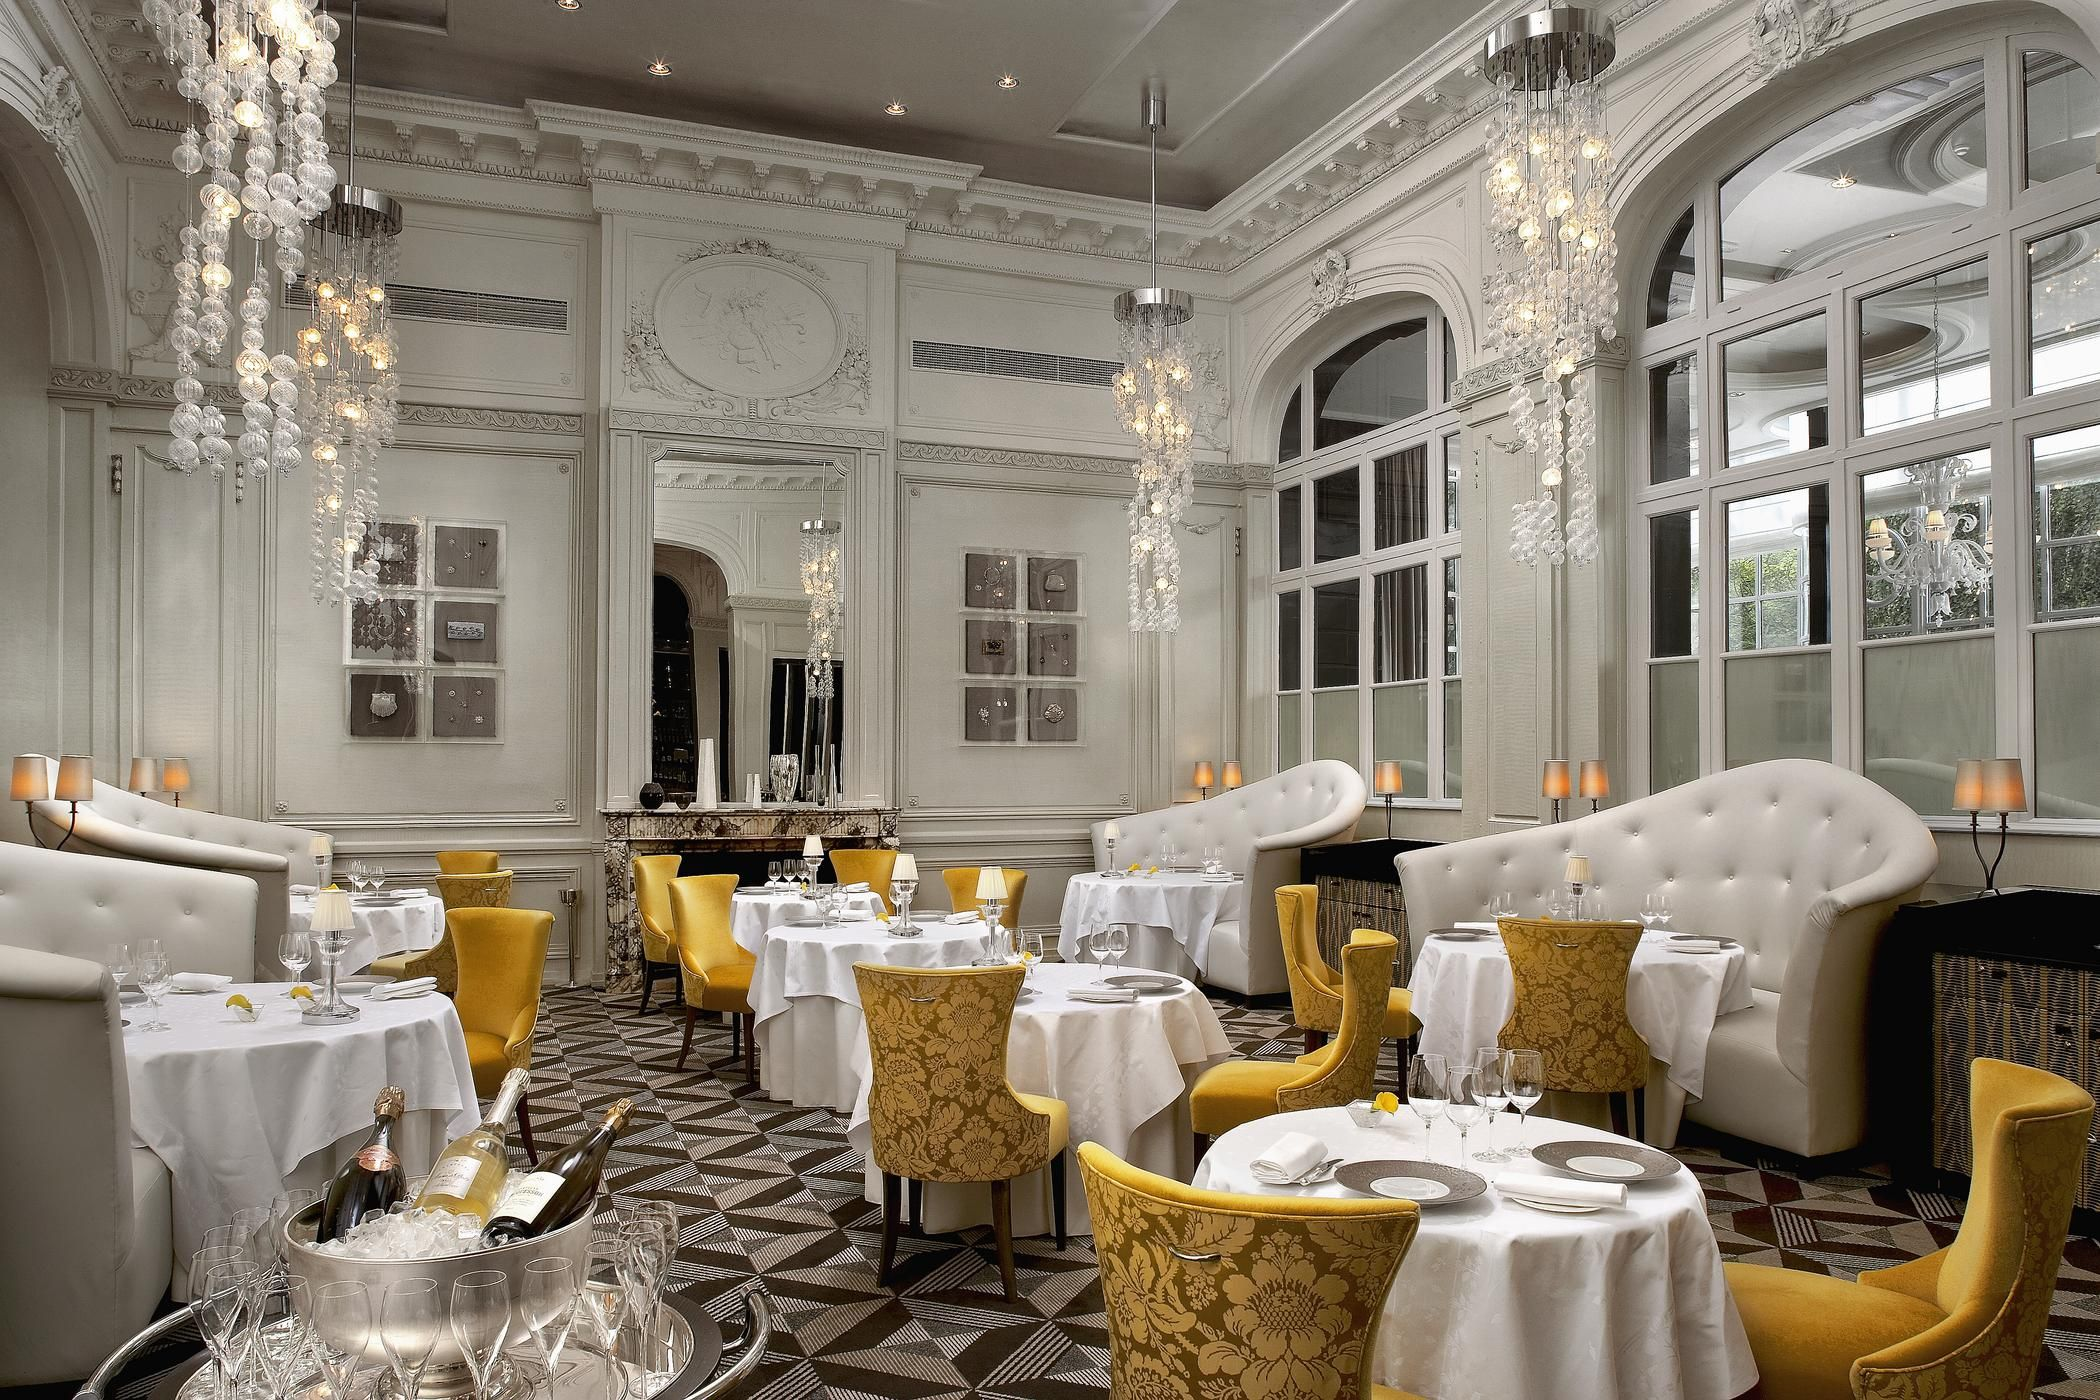 Gordon Ramsay S Trianon Palace Versailles Restaurant Is Decorated With Elegant White Molding And Bold Yellow Chairs